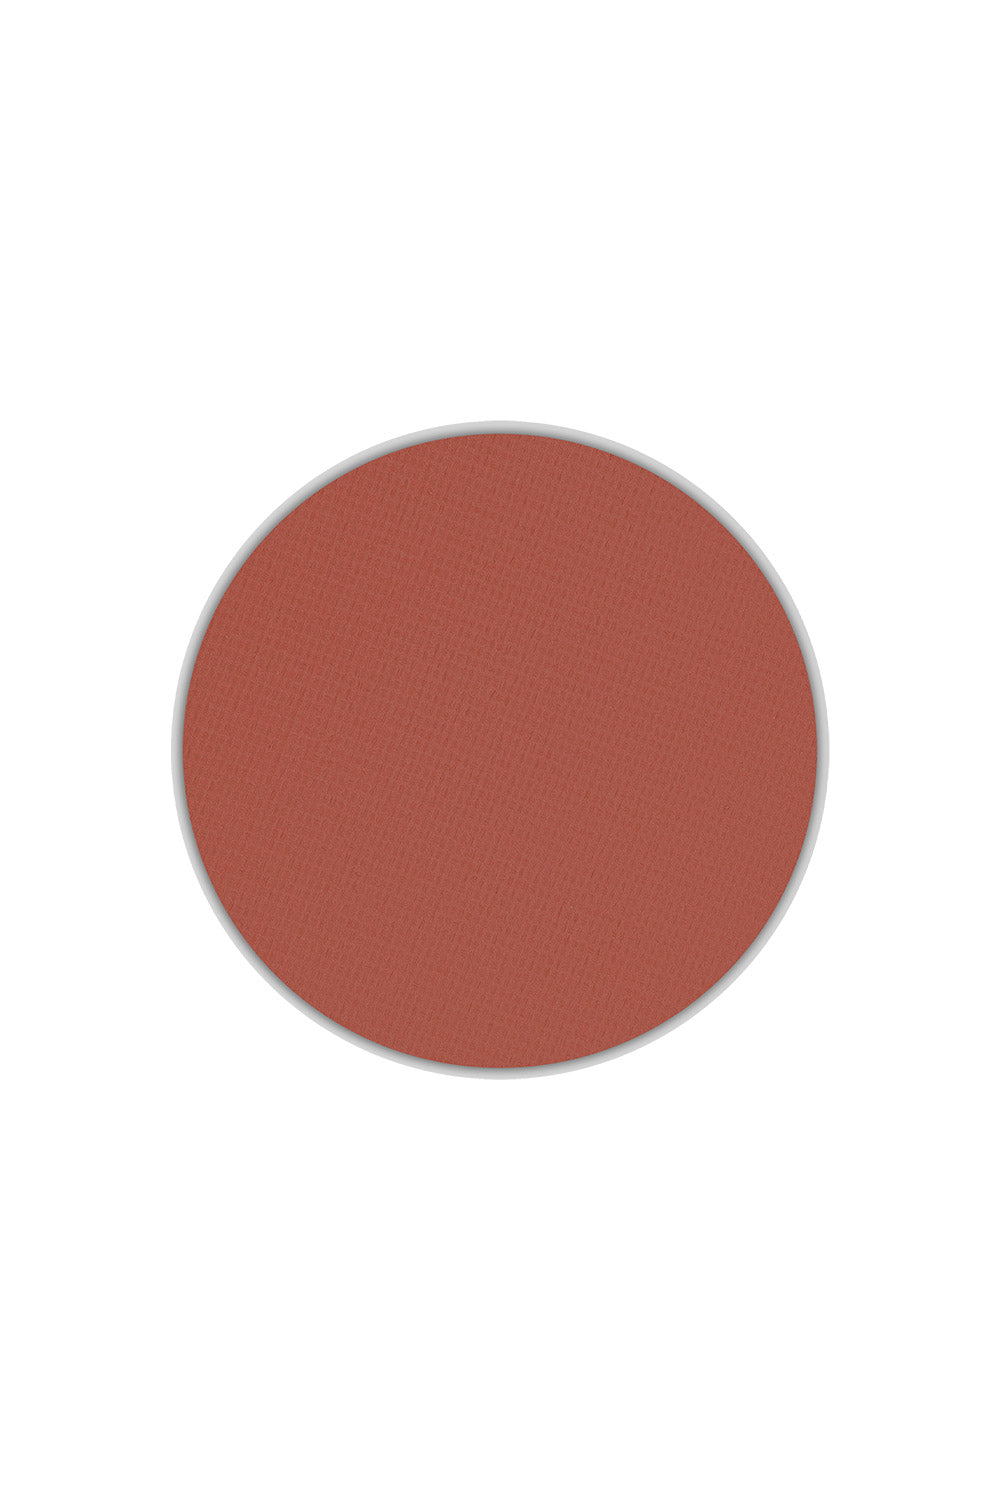 Chestnut Matte - Type 3 Eyeshadow Pan